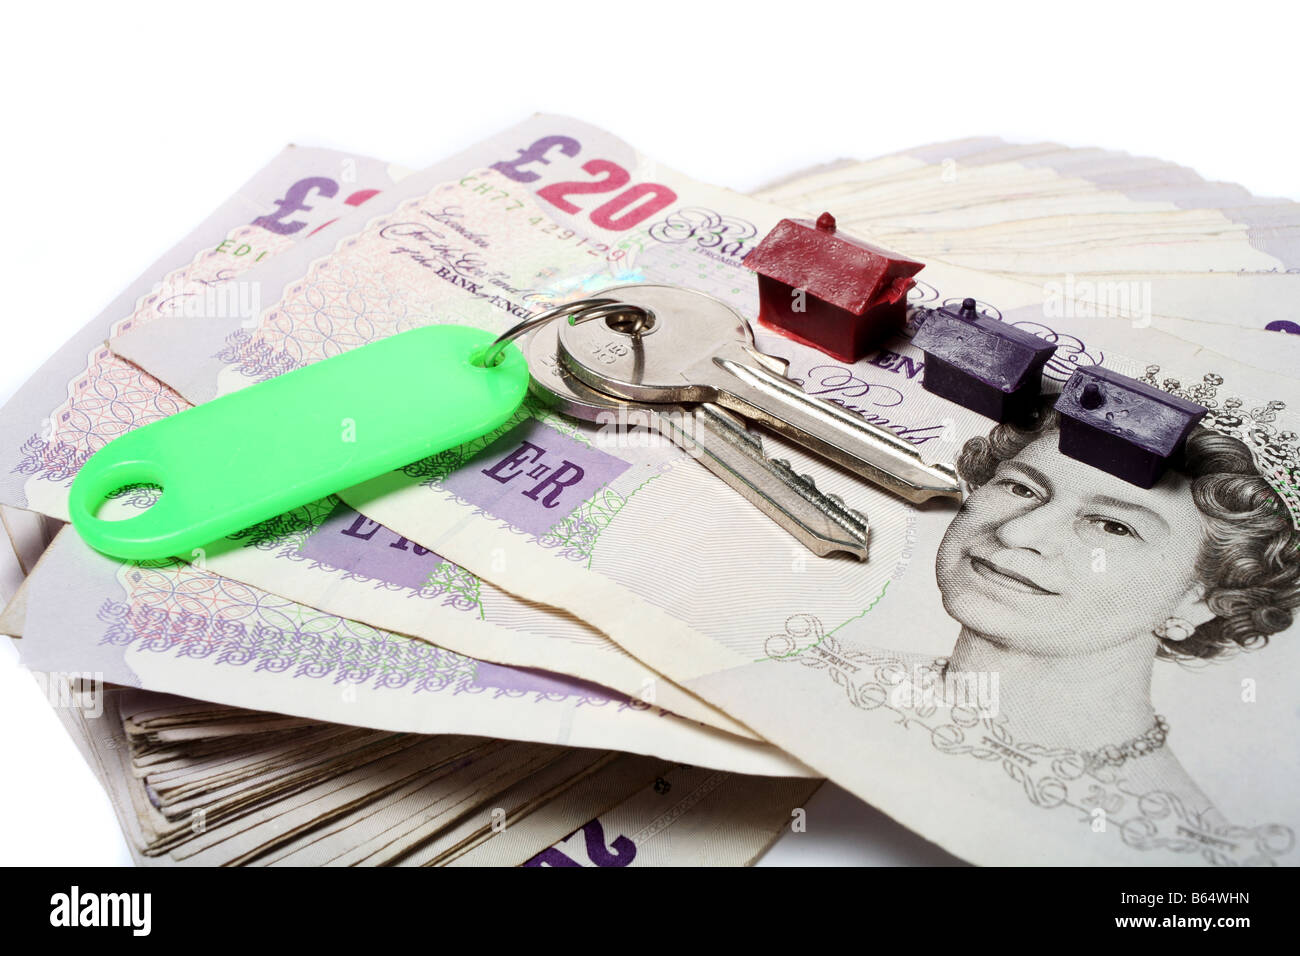 A set of house keys resting on a big pile of used 20 pound notes with some toy houses perhaps a rent or mortgage - Stock Image